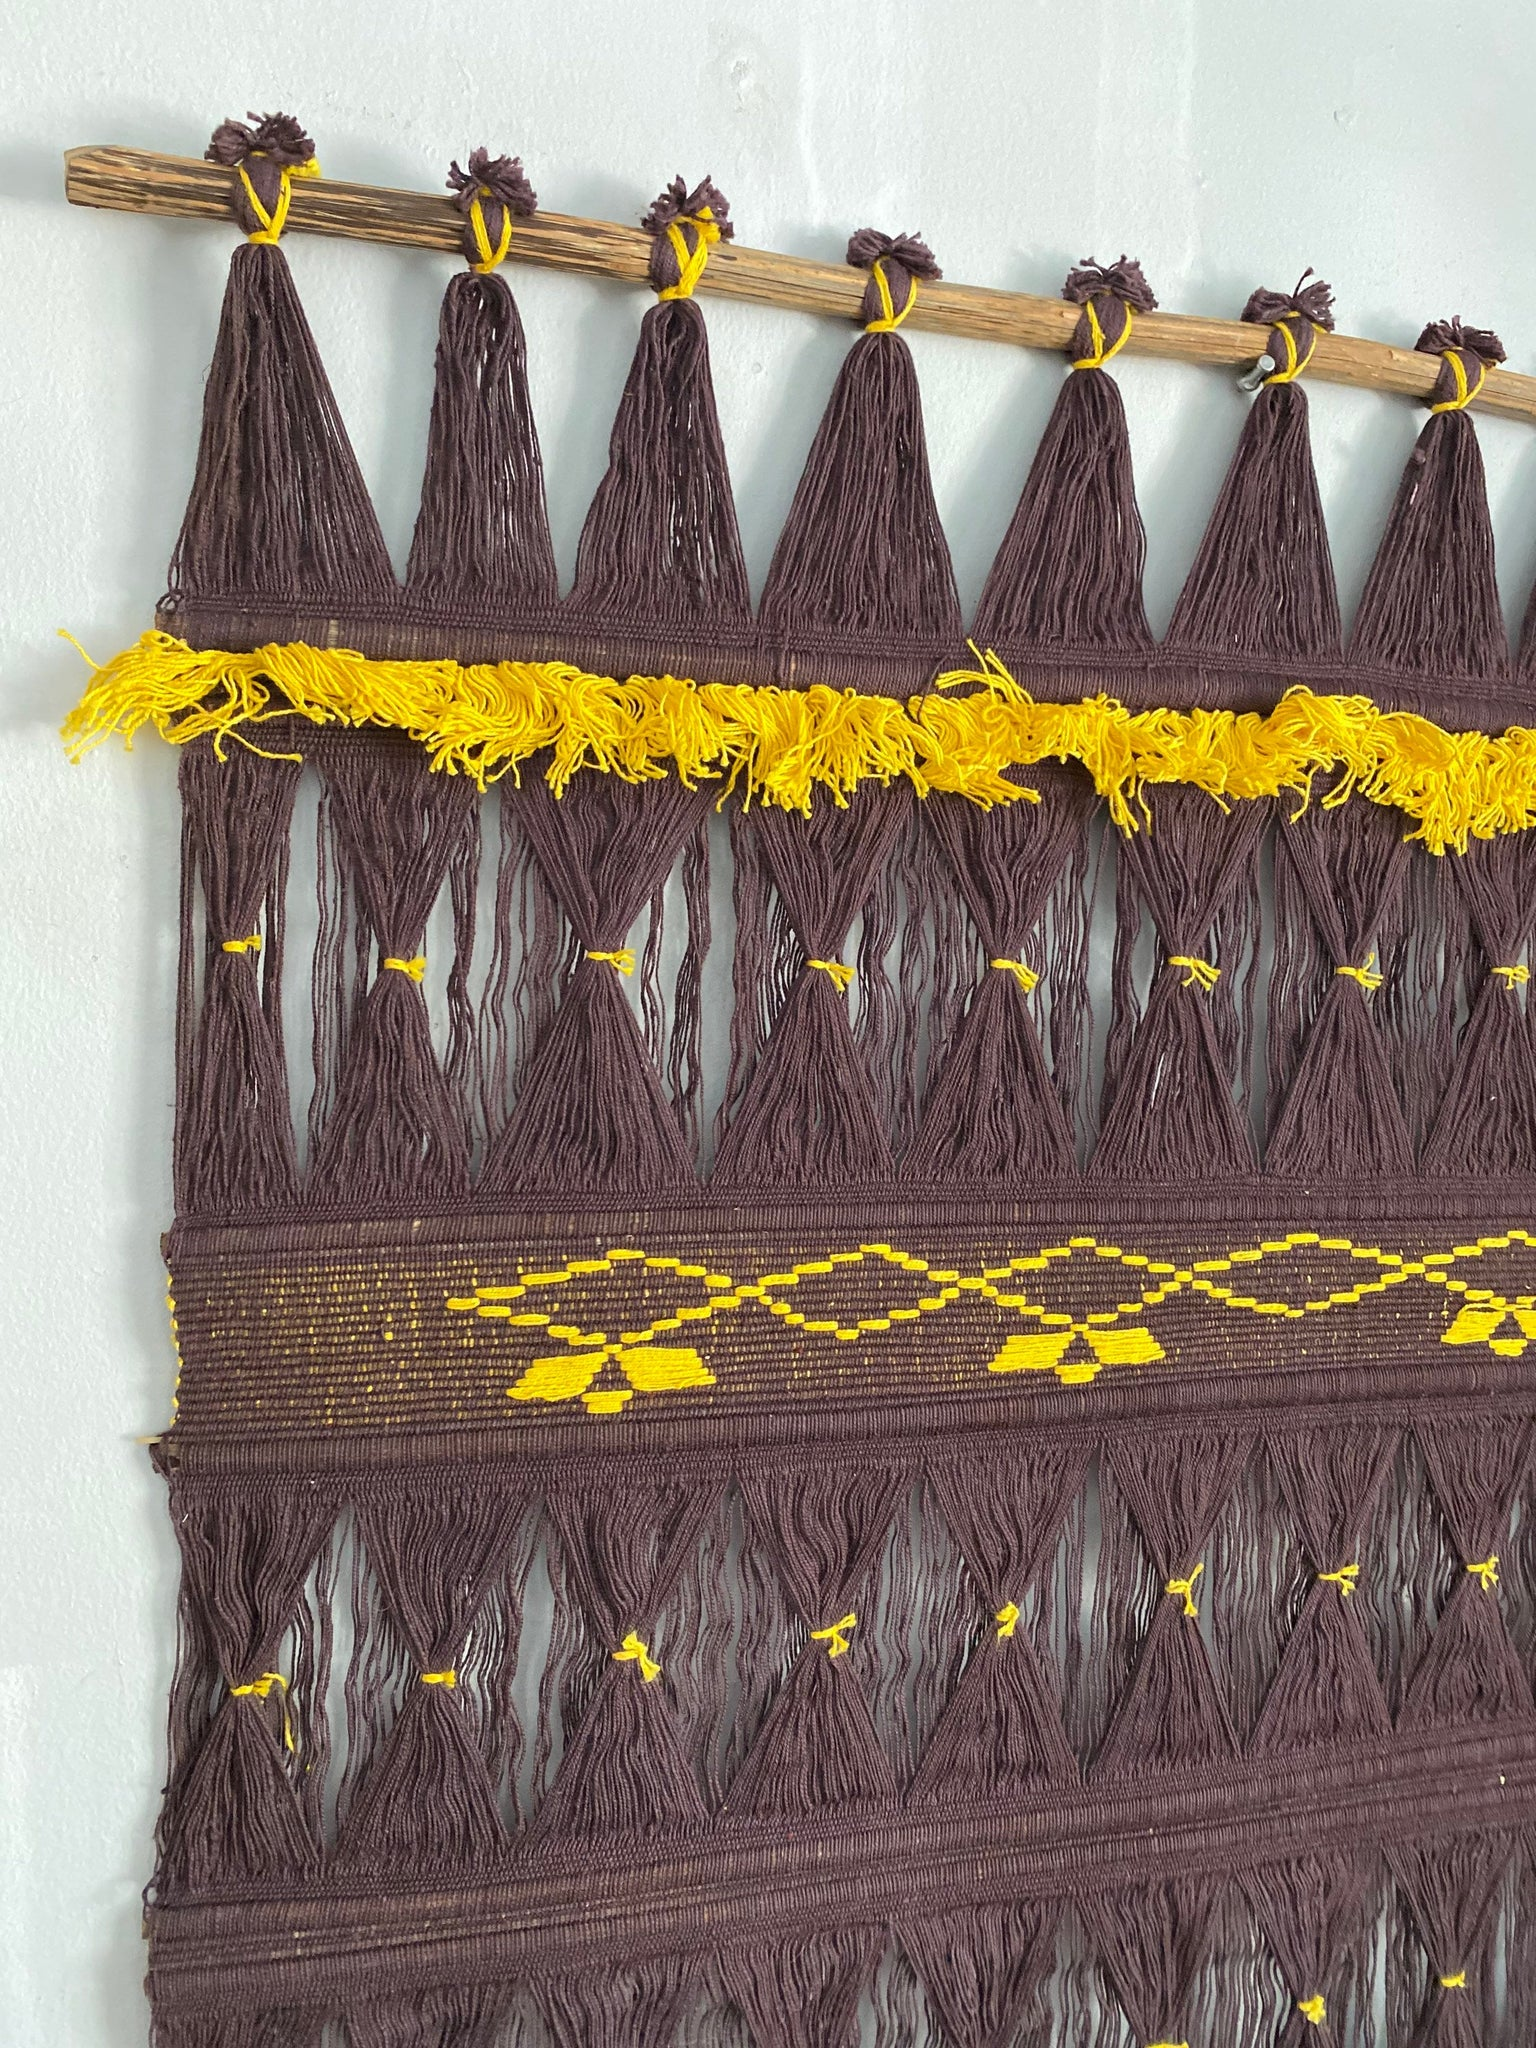 70's Traditional COLOMBIAN WALL HANGING woven folk art tapestry weaving.